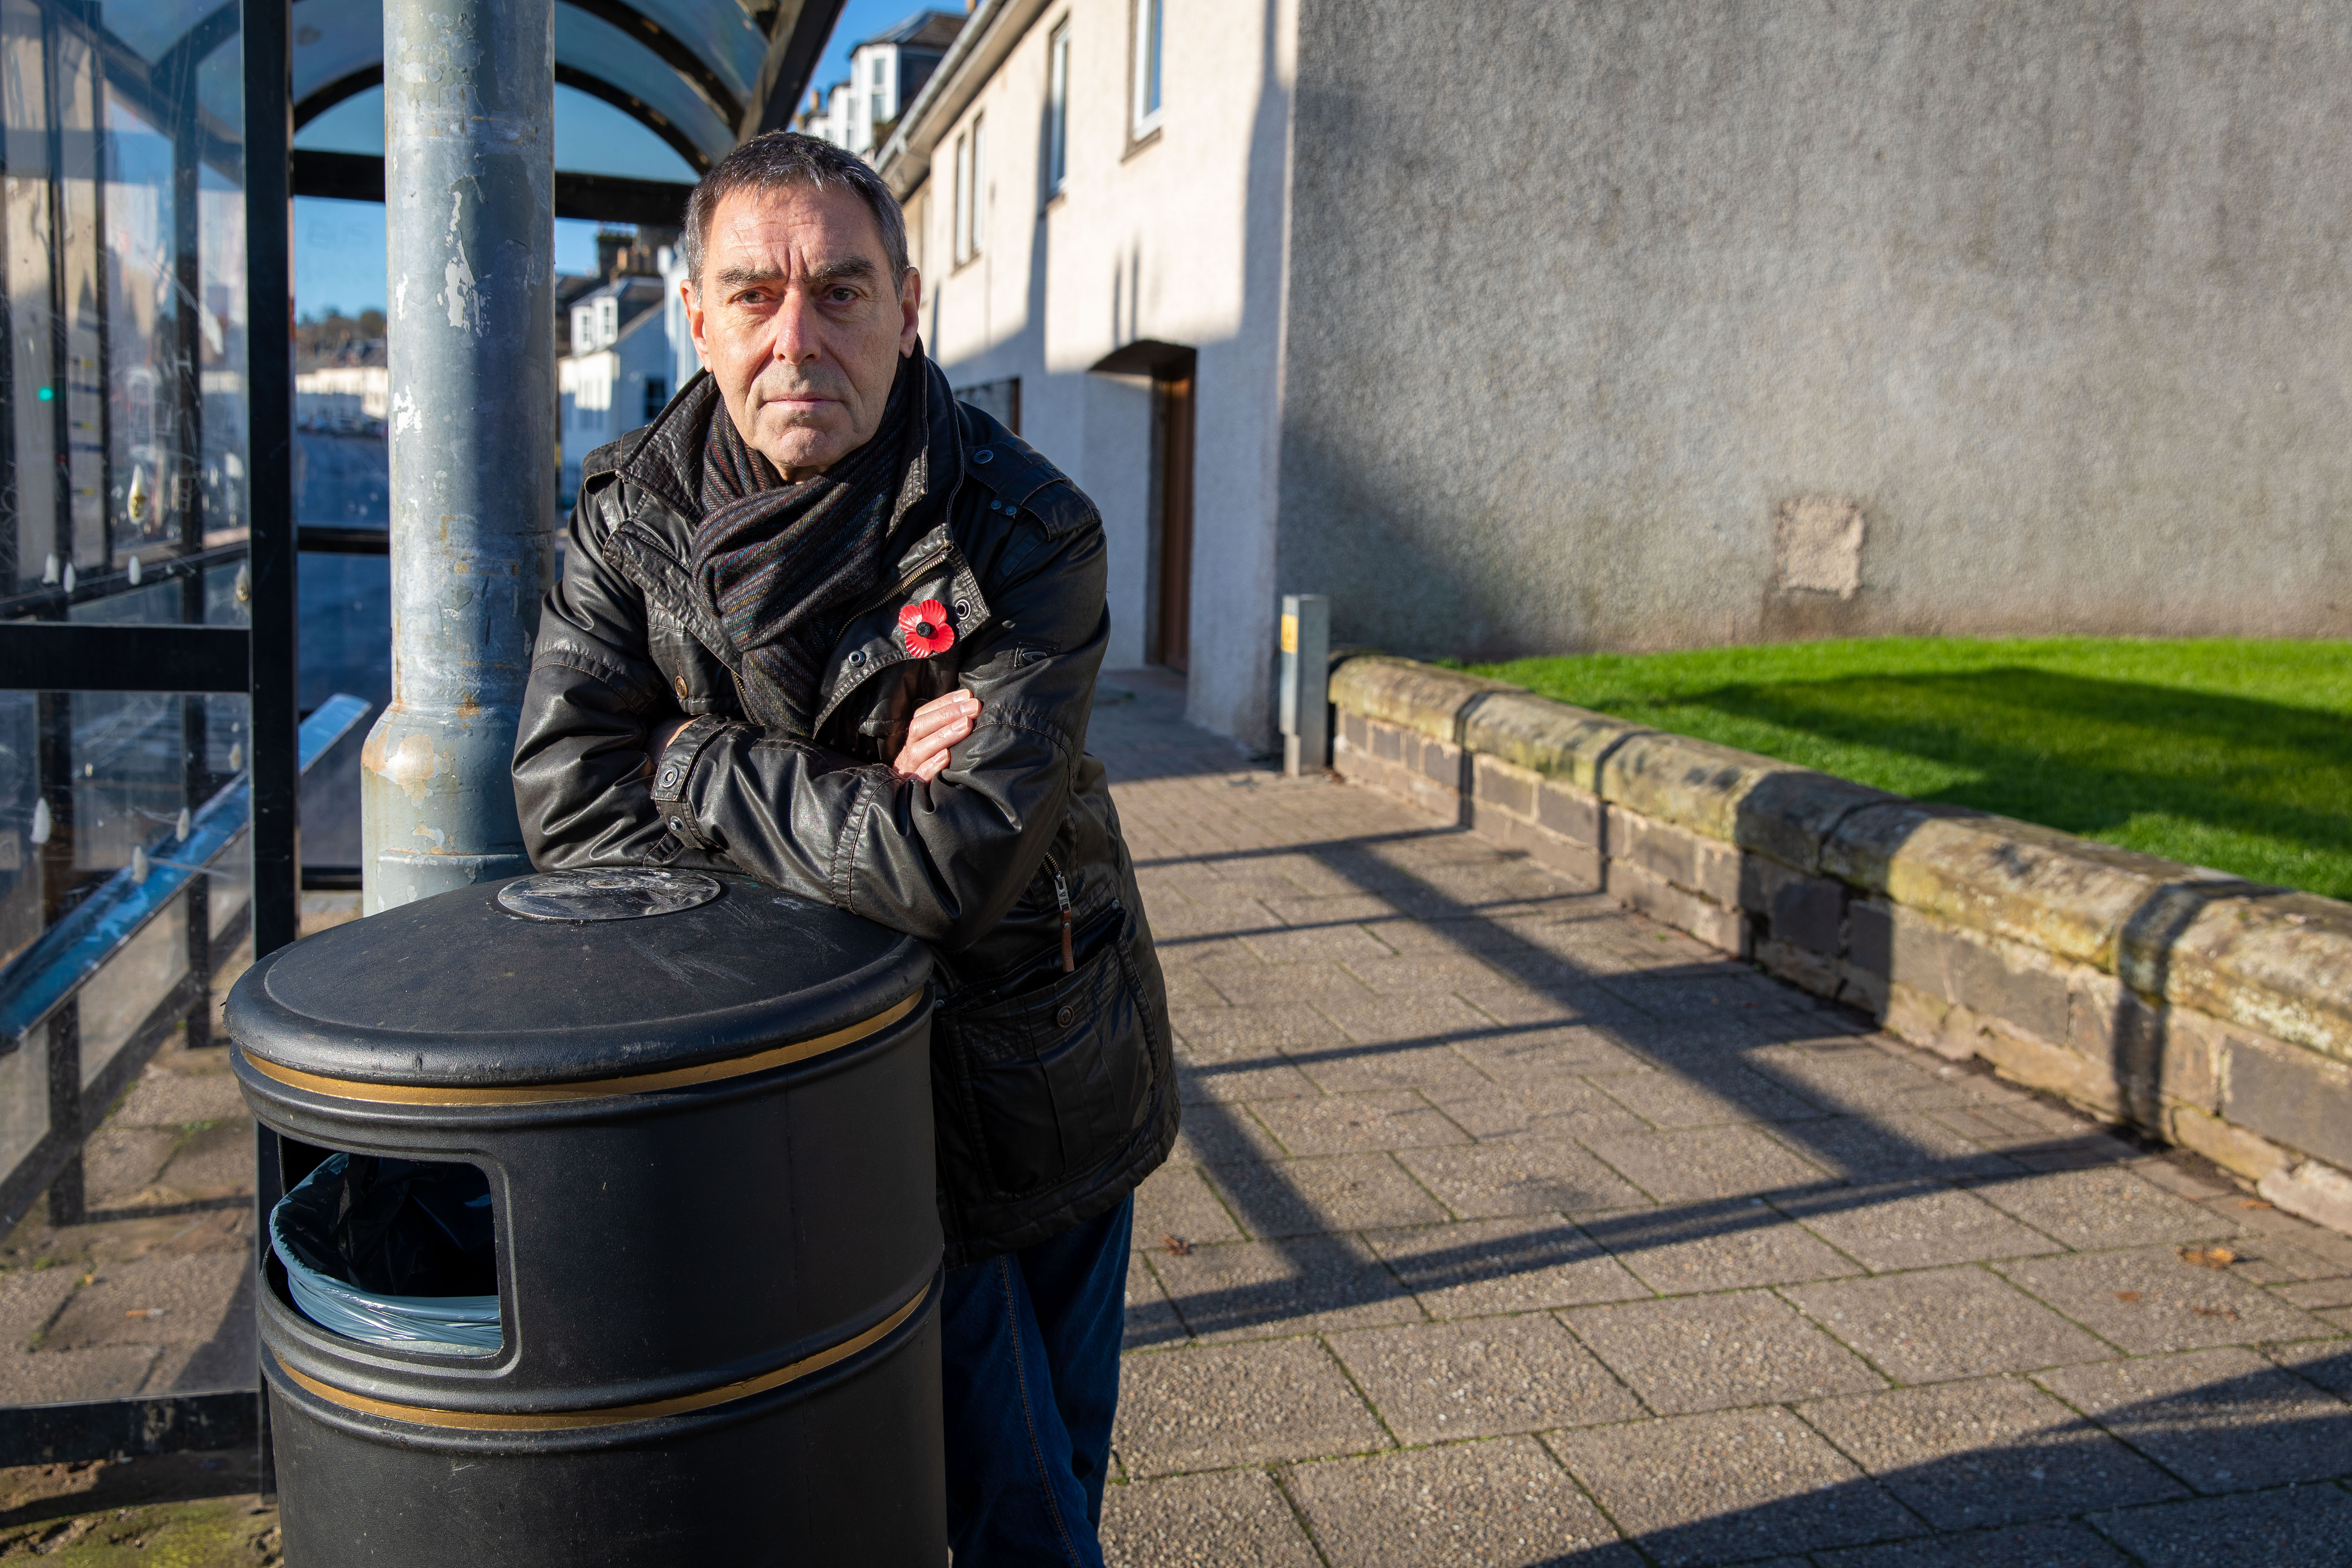 Local resident John Smith has raised concerns about the loss of Newburgh's street sweeper.